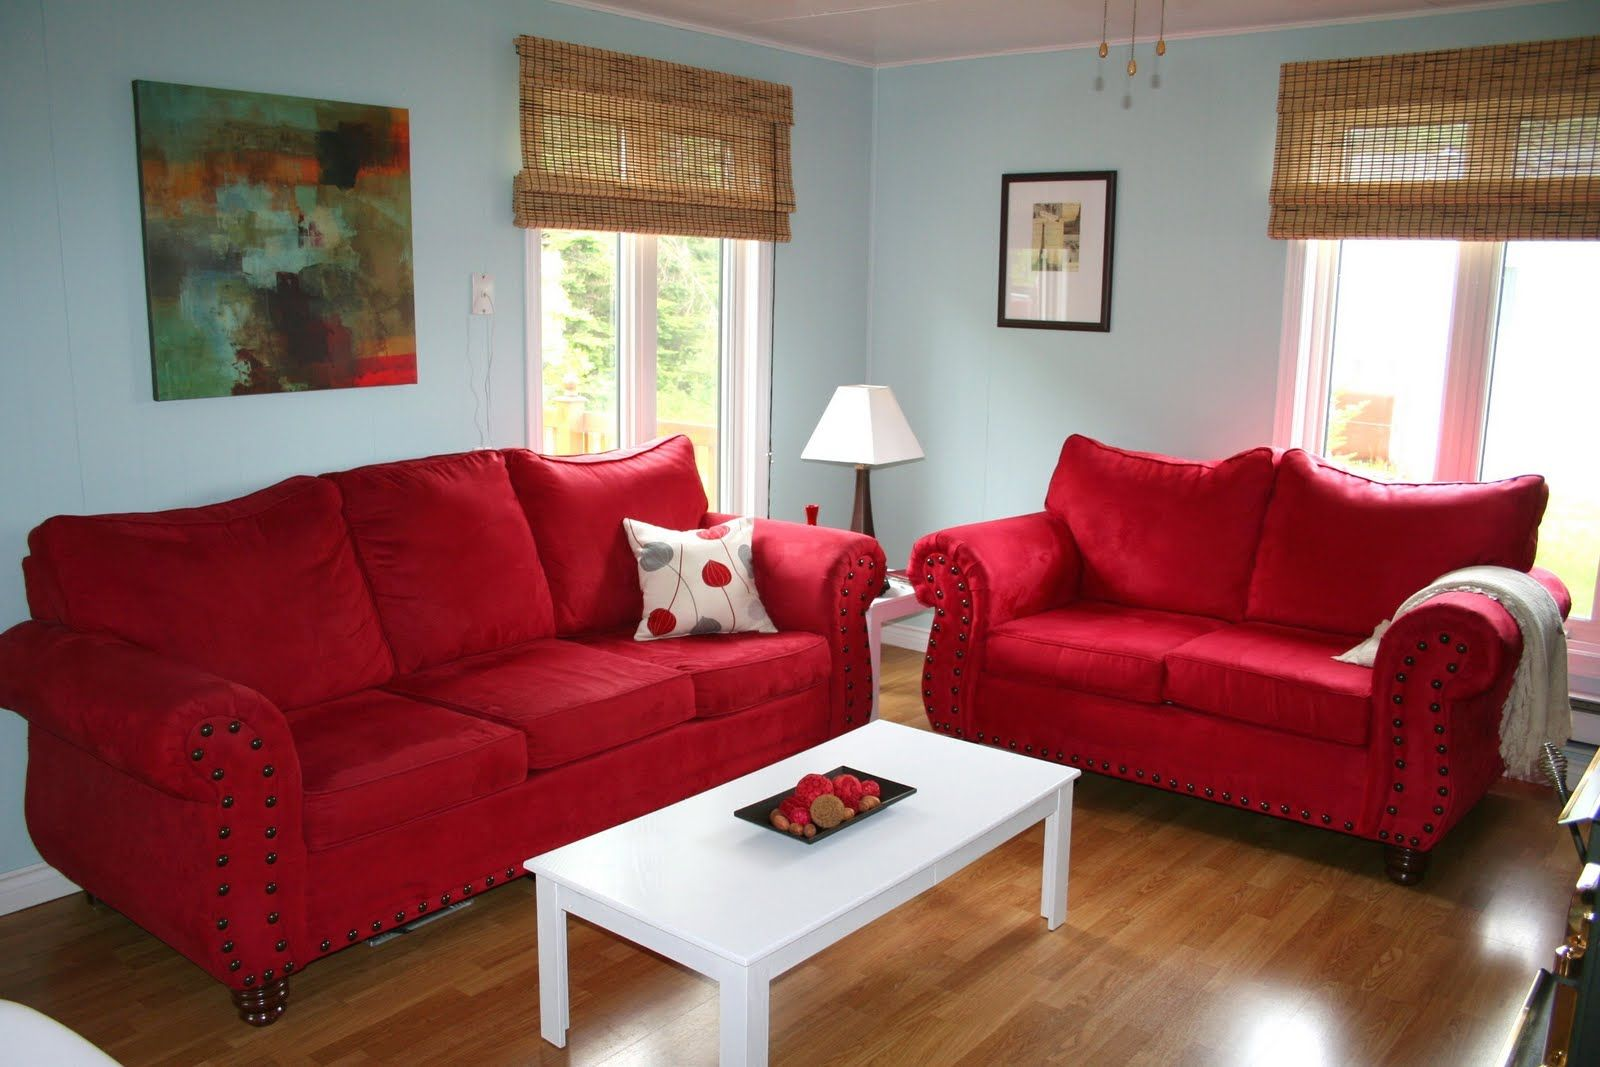 Rote Waende Wohnzimmer Love The Light Blue Walls With Red Furniture Living Room